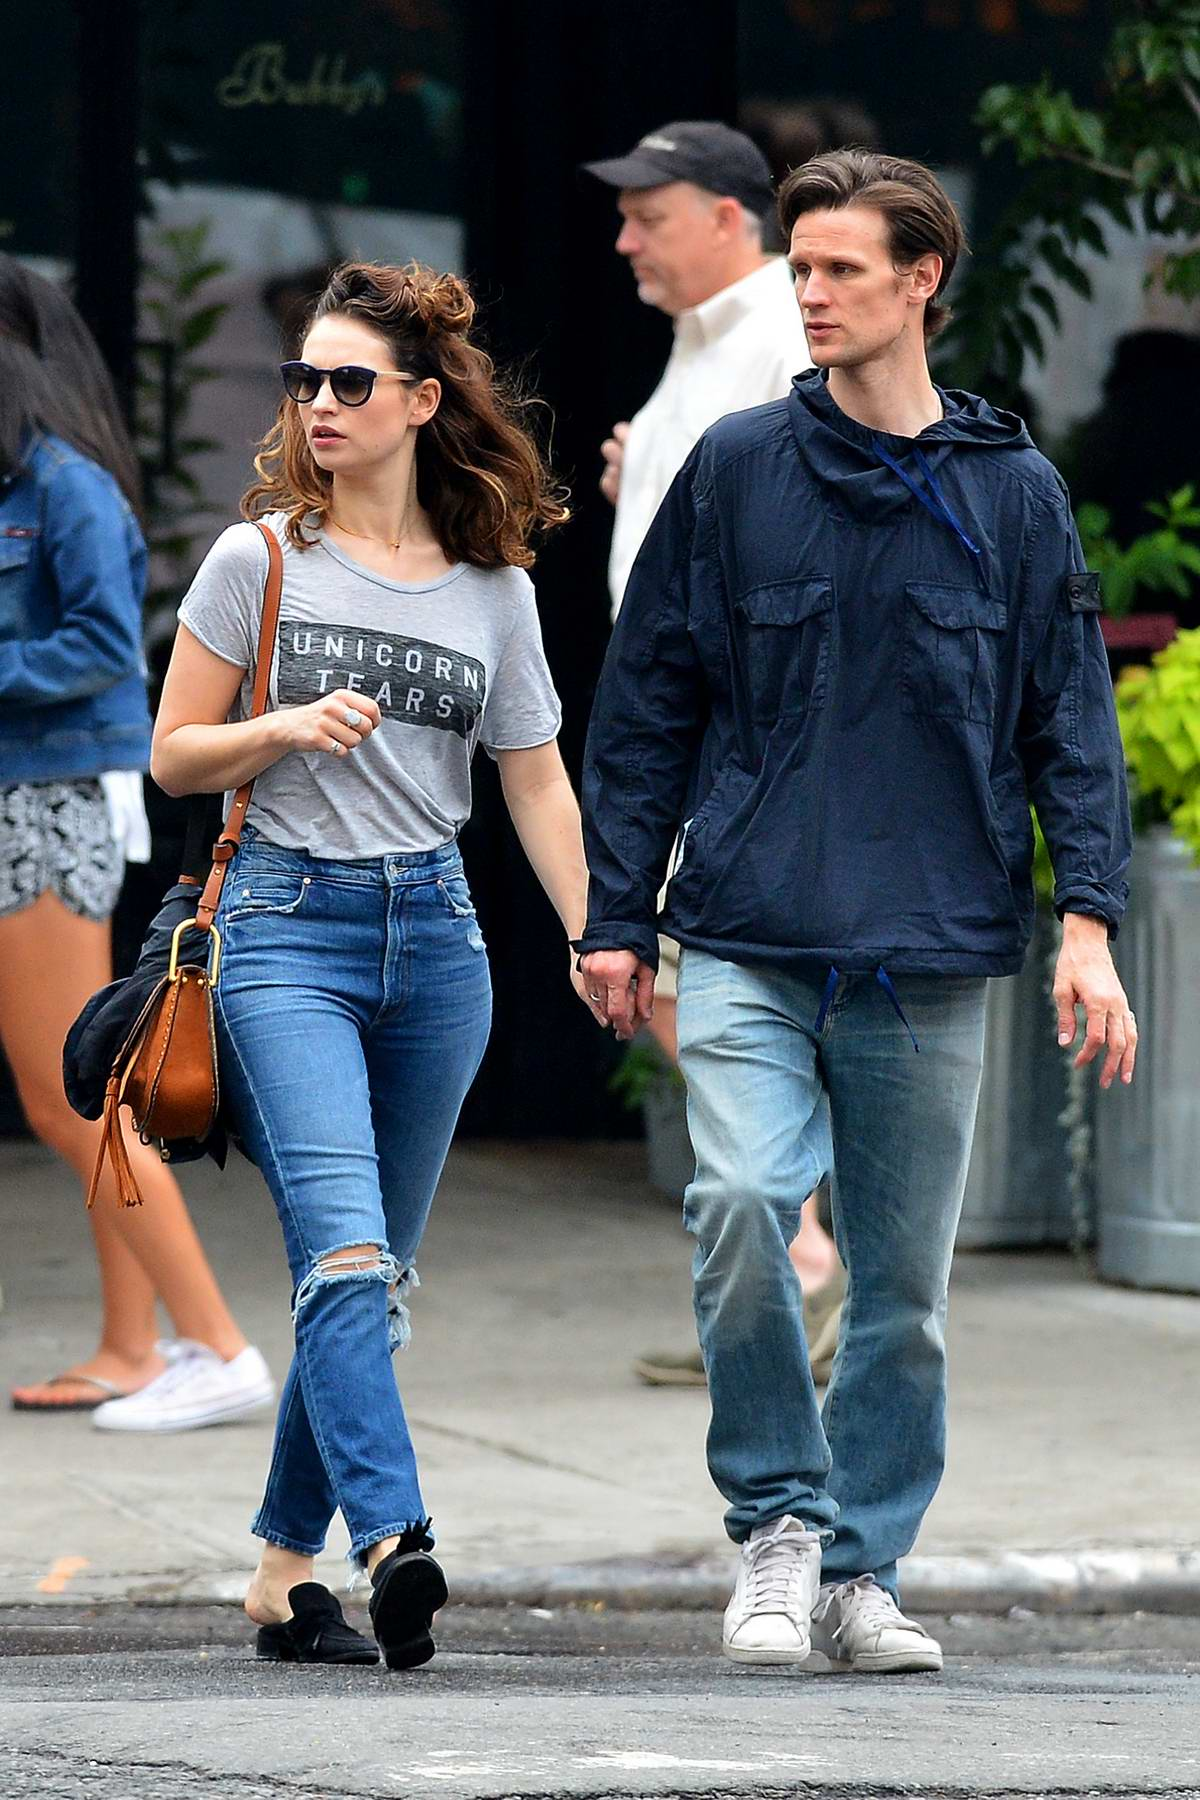 lily james enjoying a day out with boyfriend matt smith in